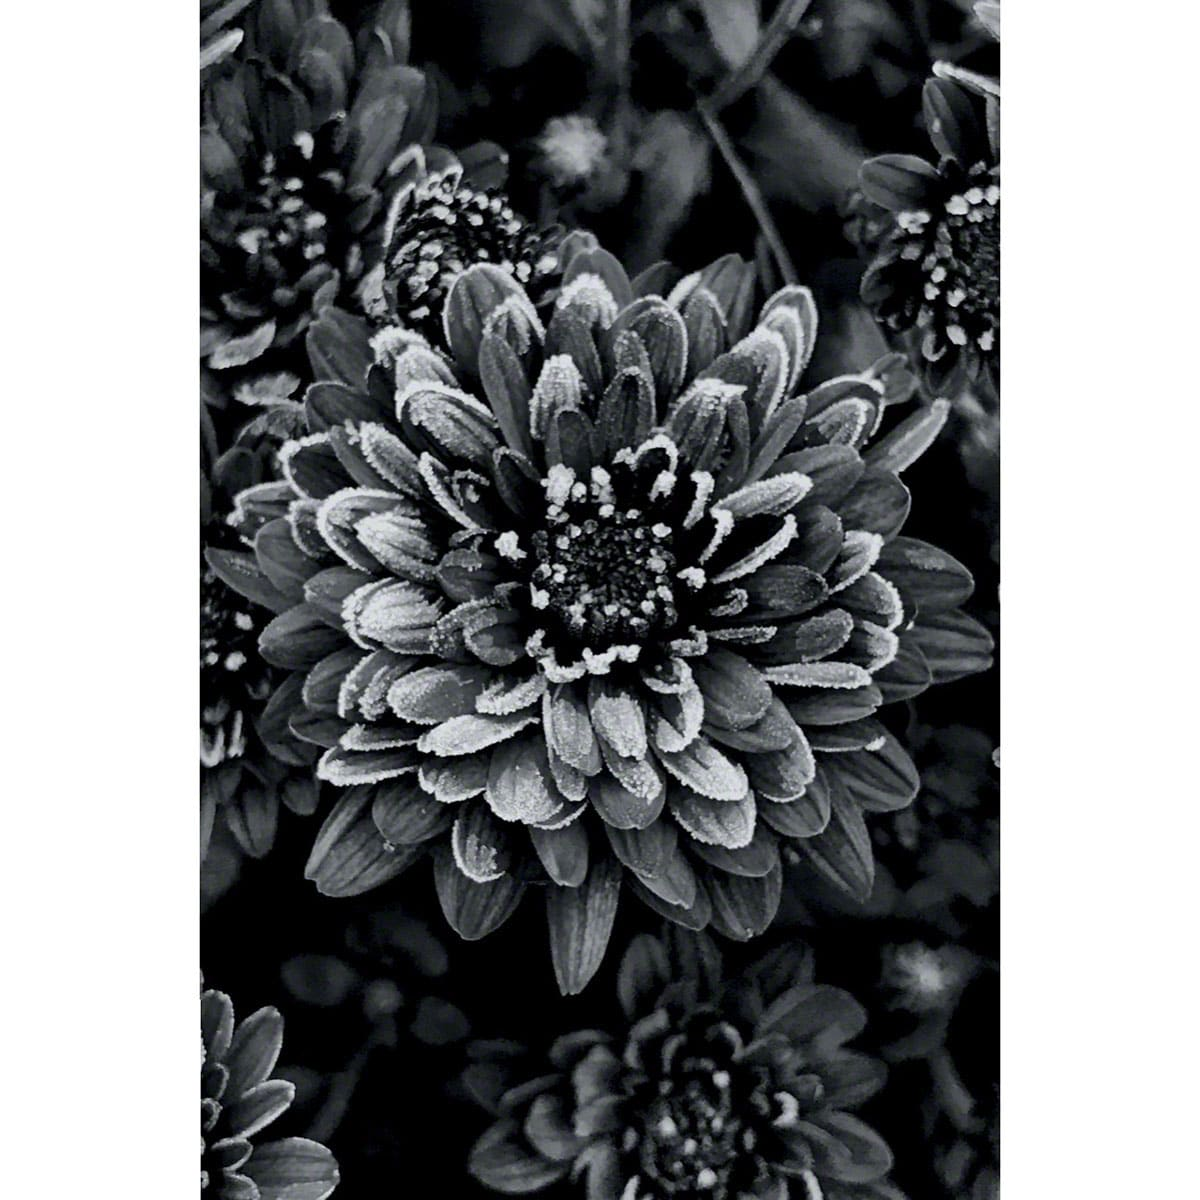 bw-ice-flower